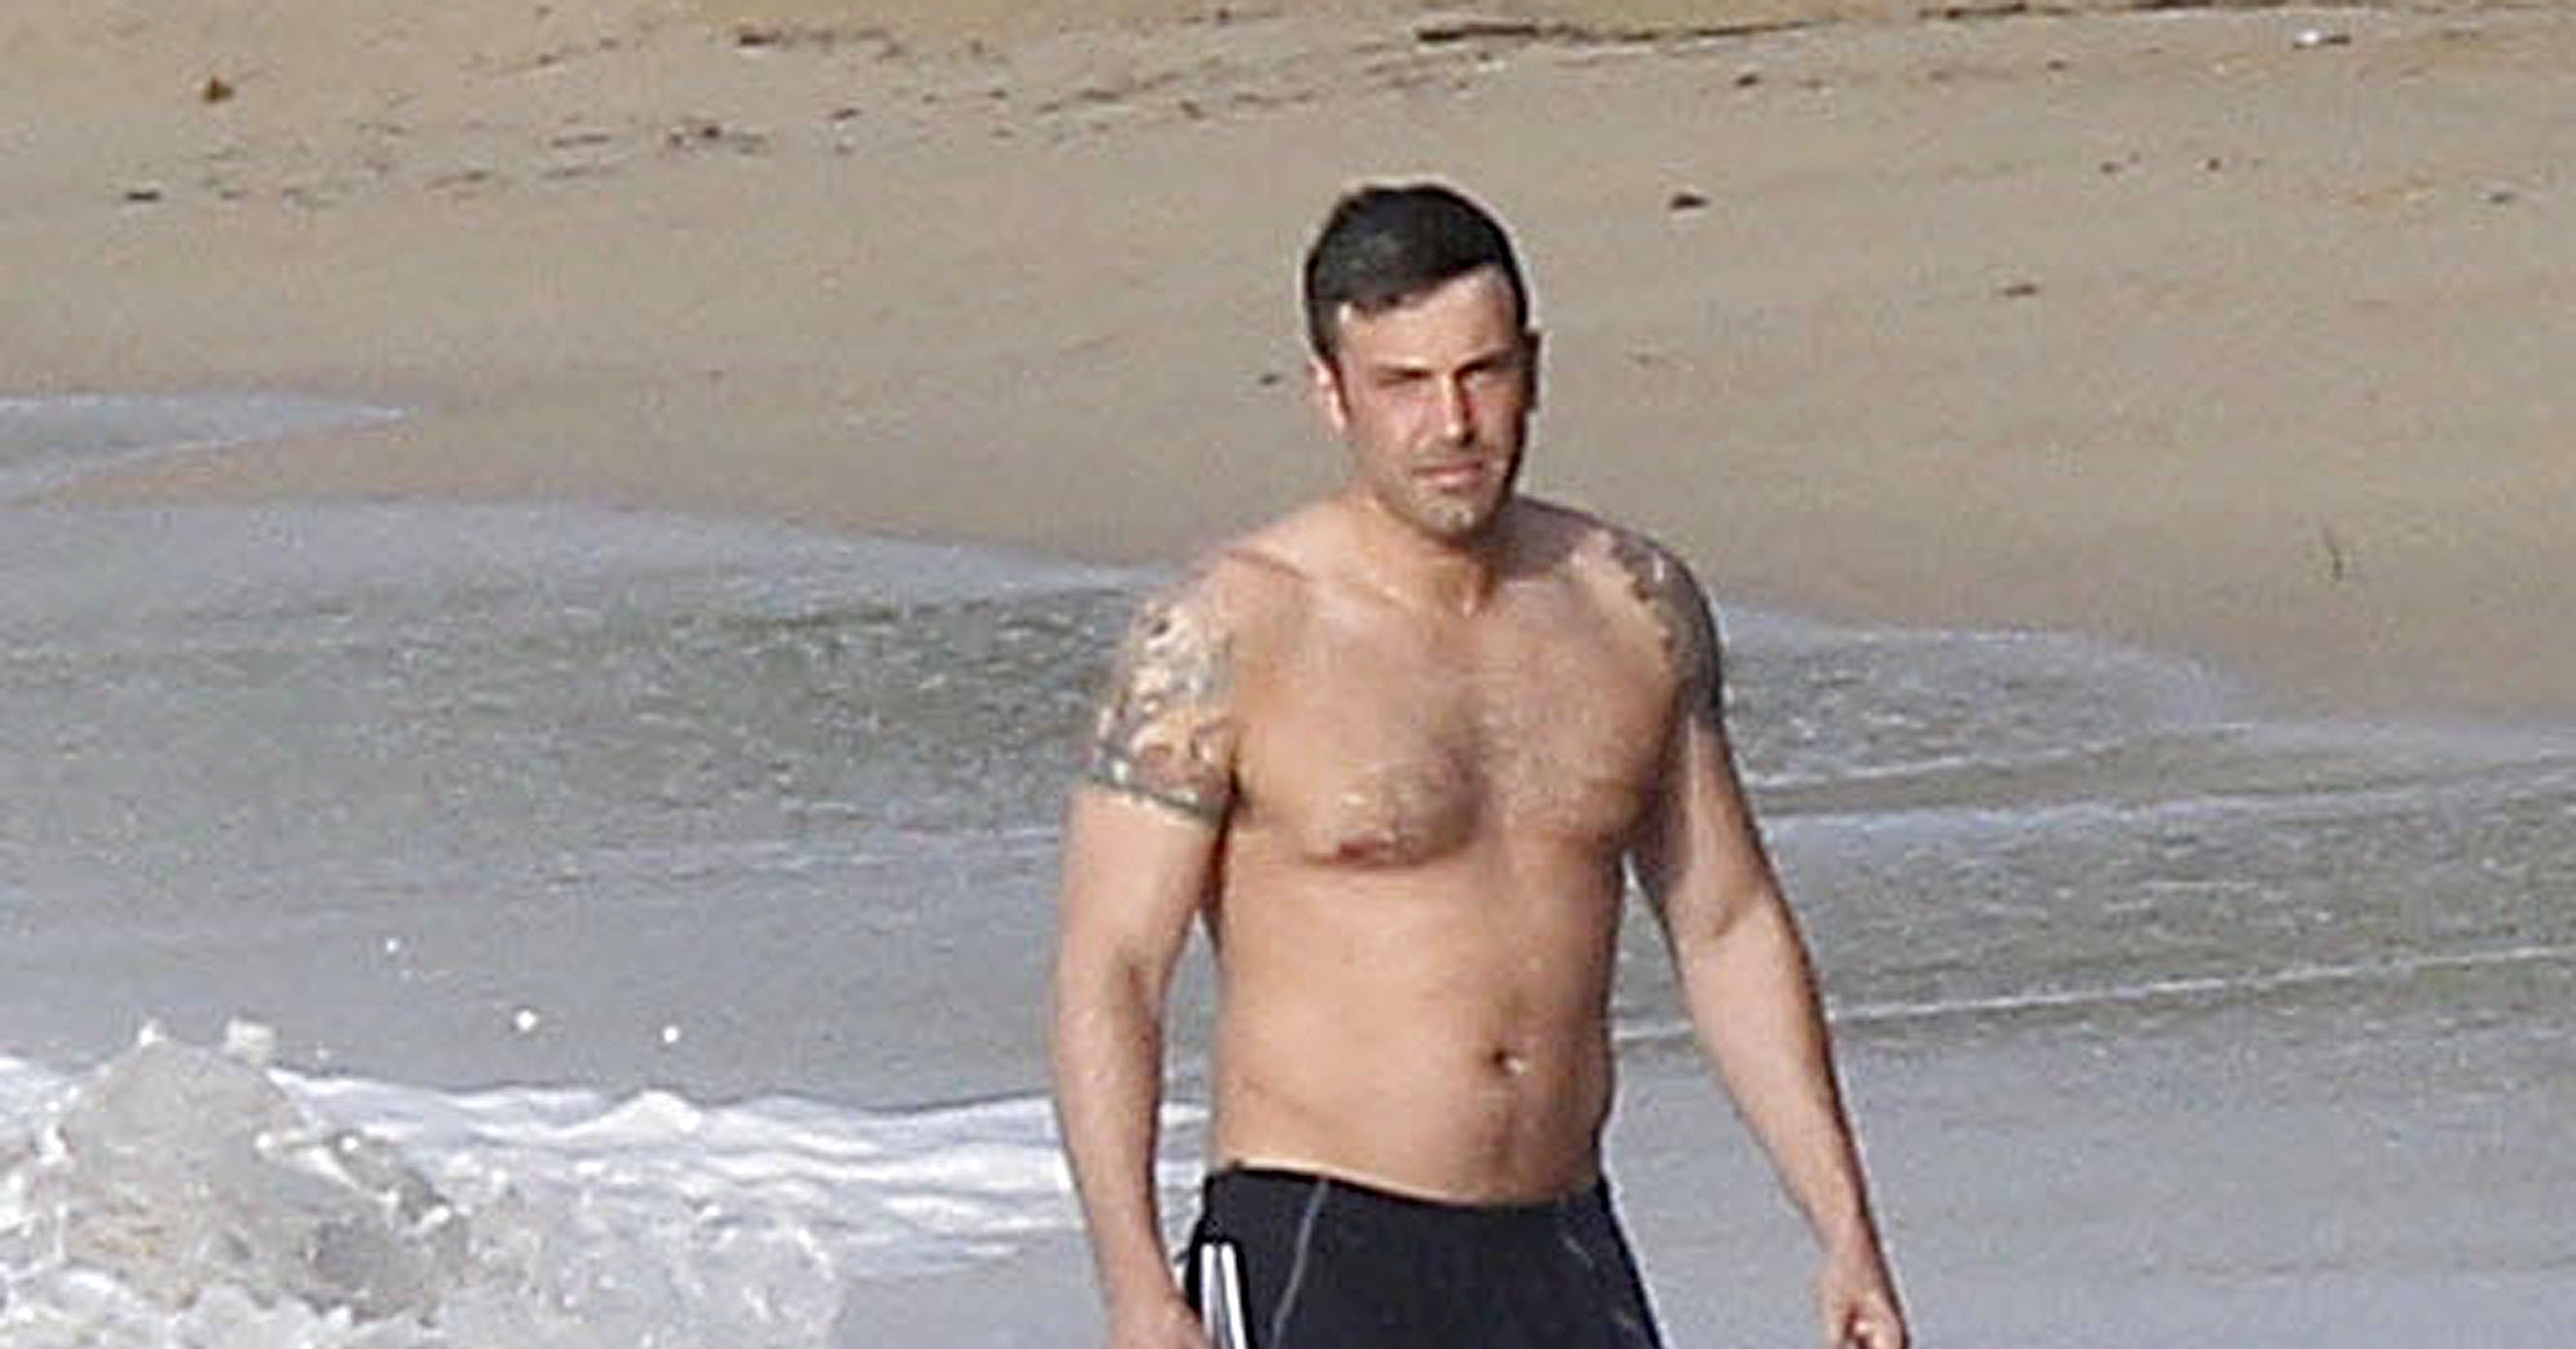 Attractive Nude Male Ben Affleck Images